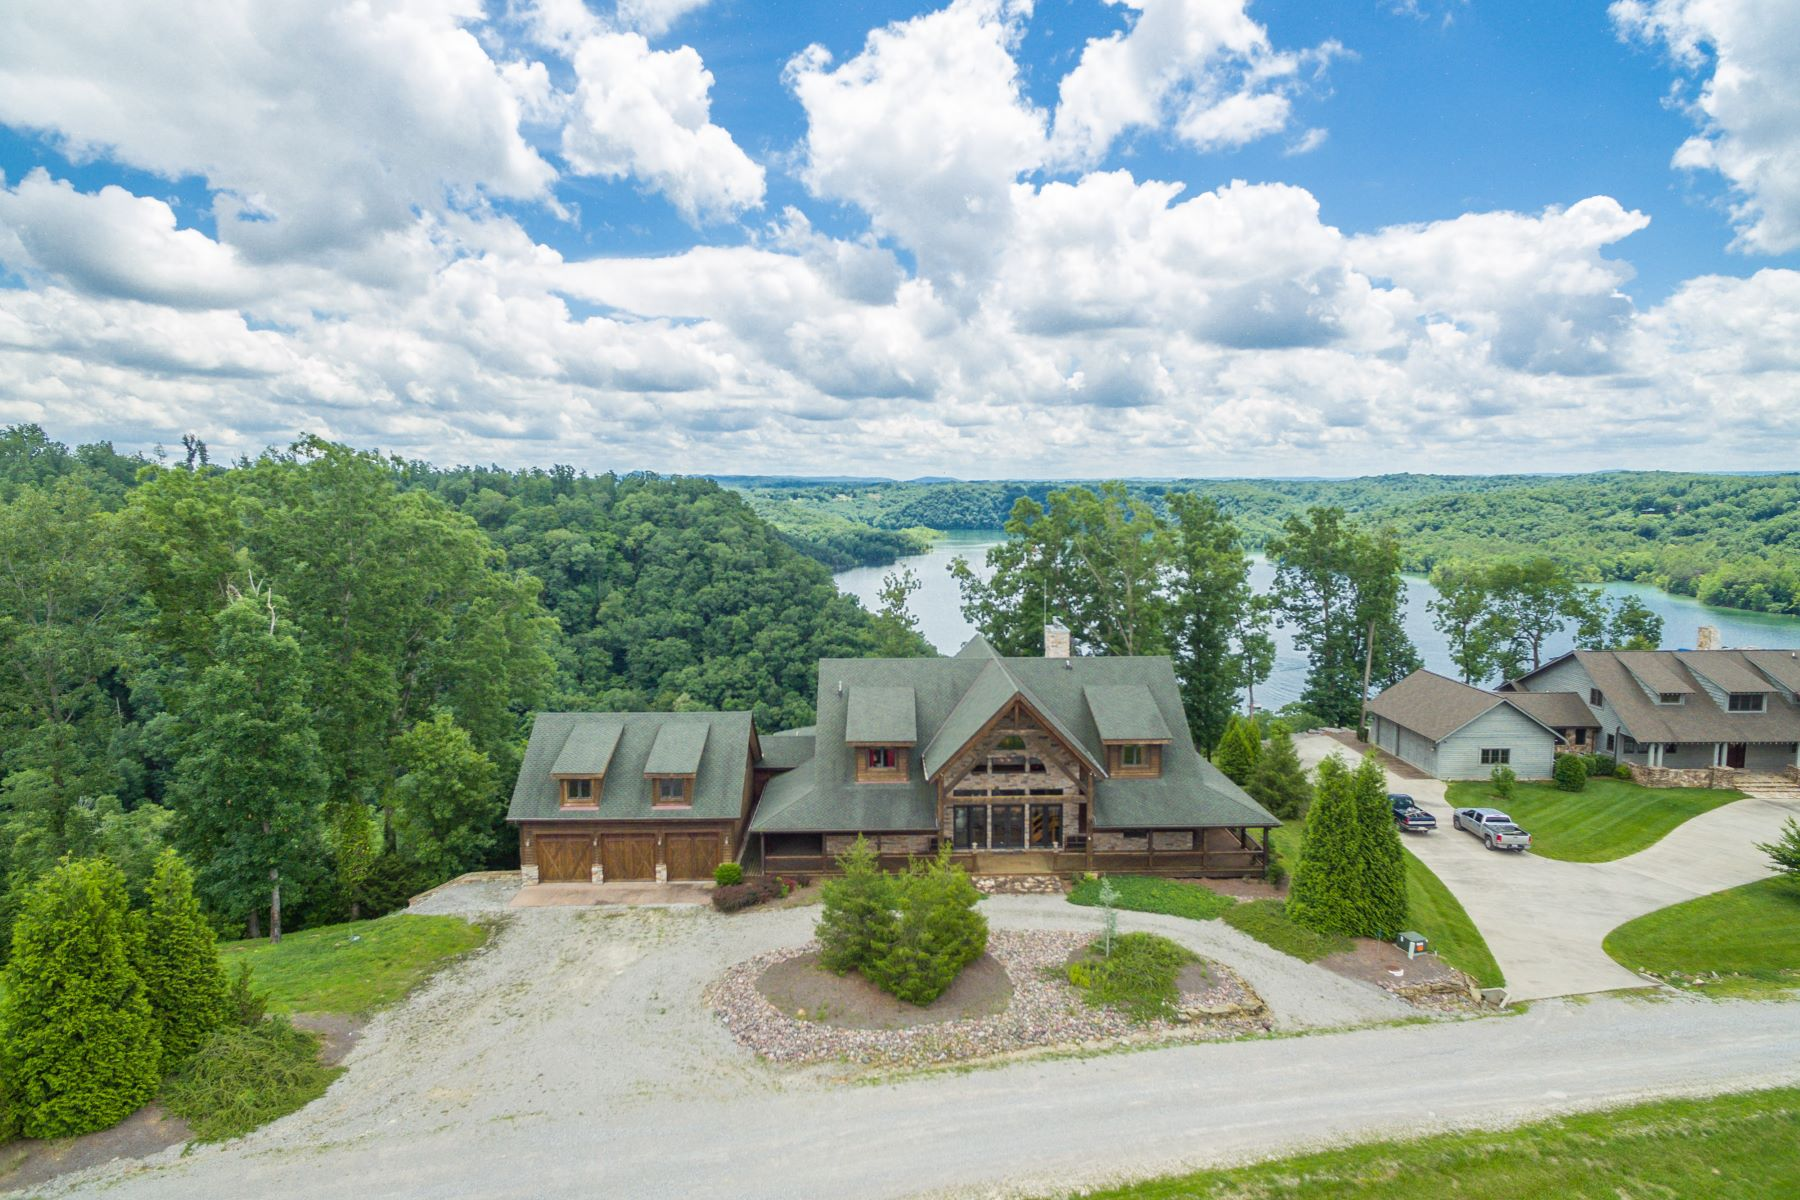 Single Family Home for Sale at 390 Eagle Point Drive Albany, Kentucky 42602 United States